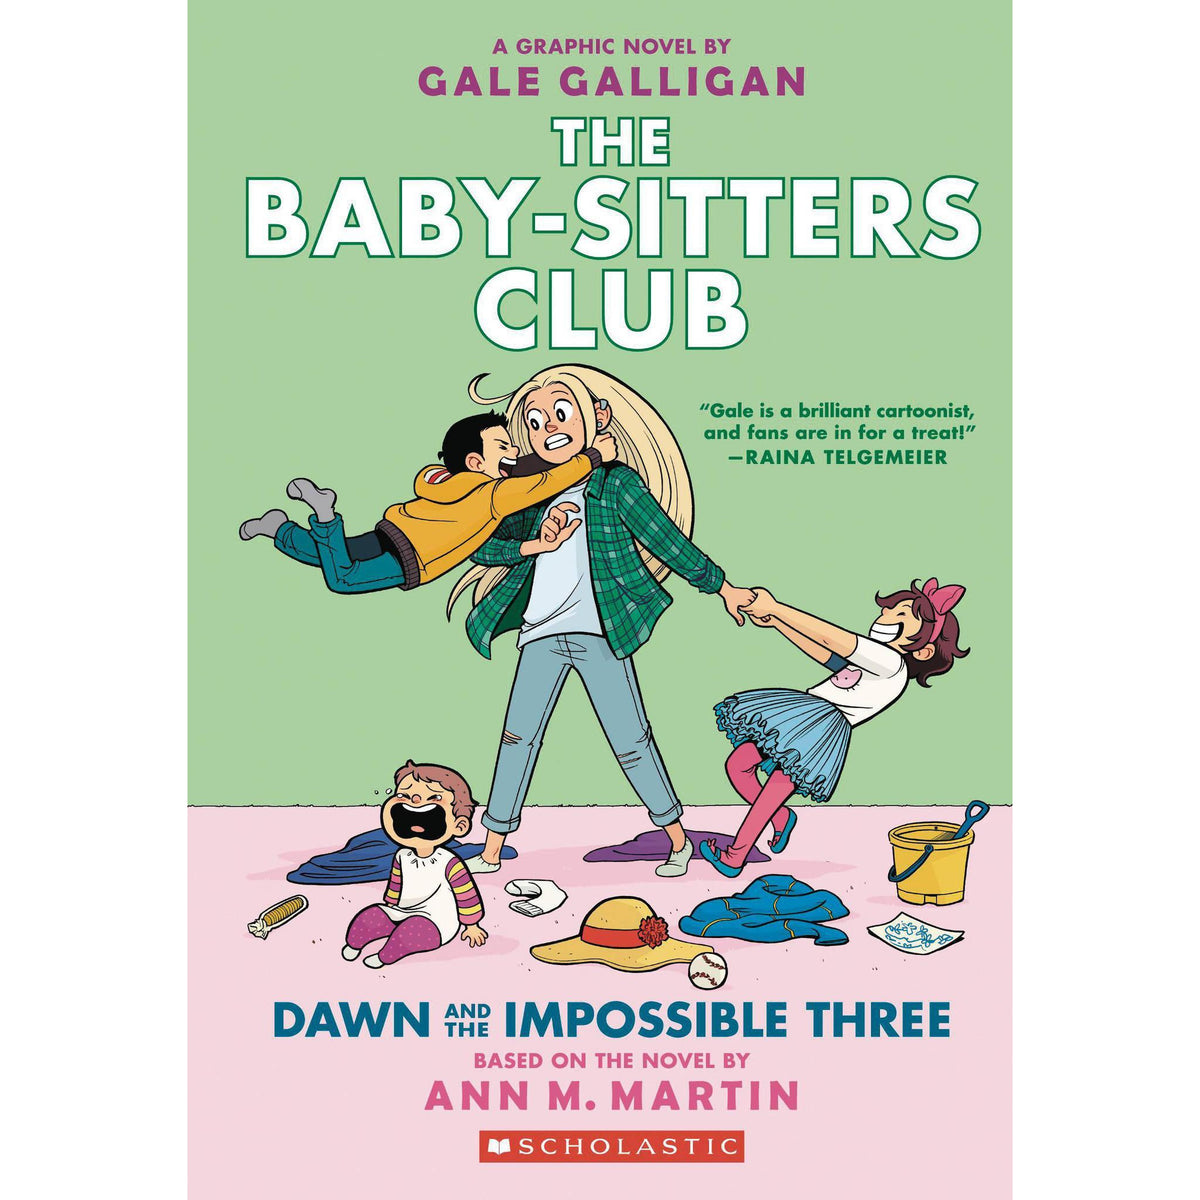 BABY SITTERS CLUB VOLUME 05: DAWN AND THE IMPOSSIBLE THREE